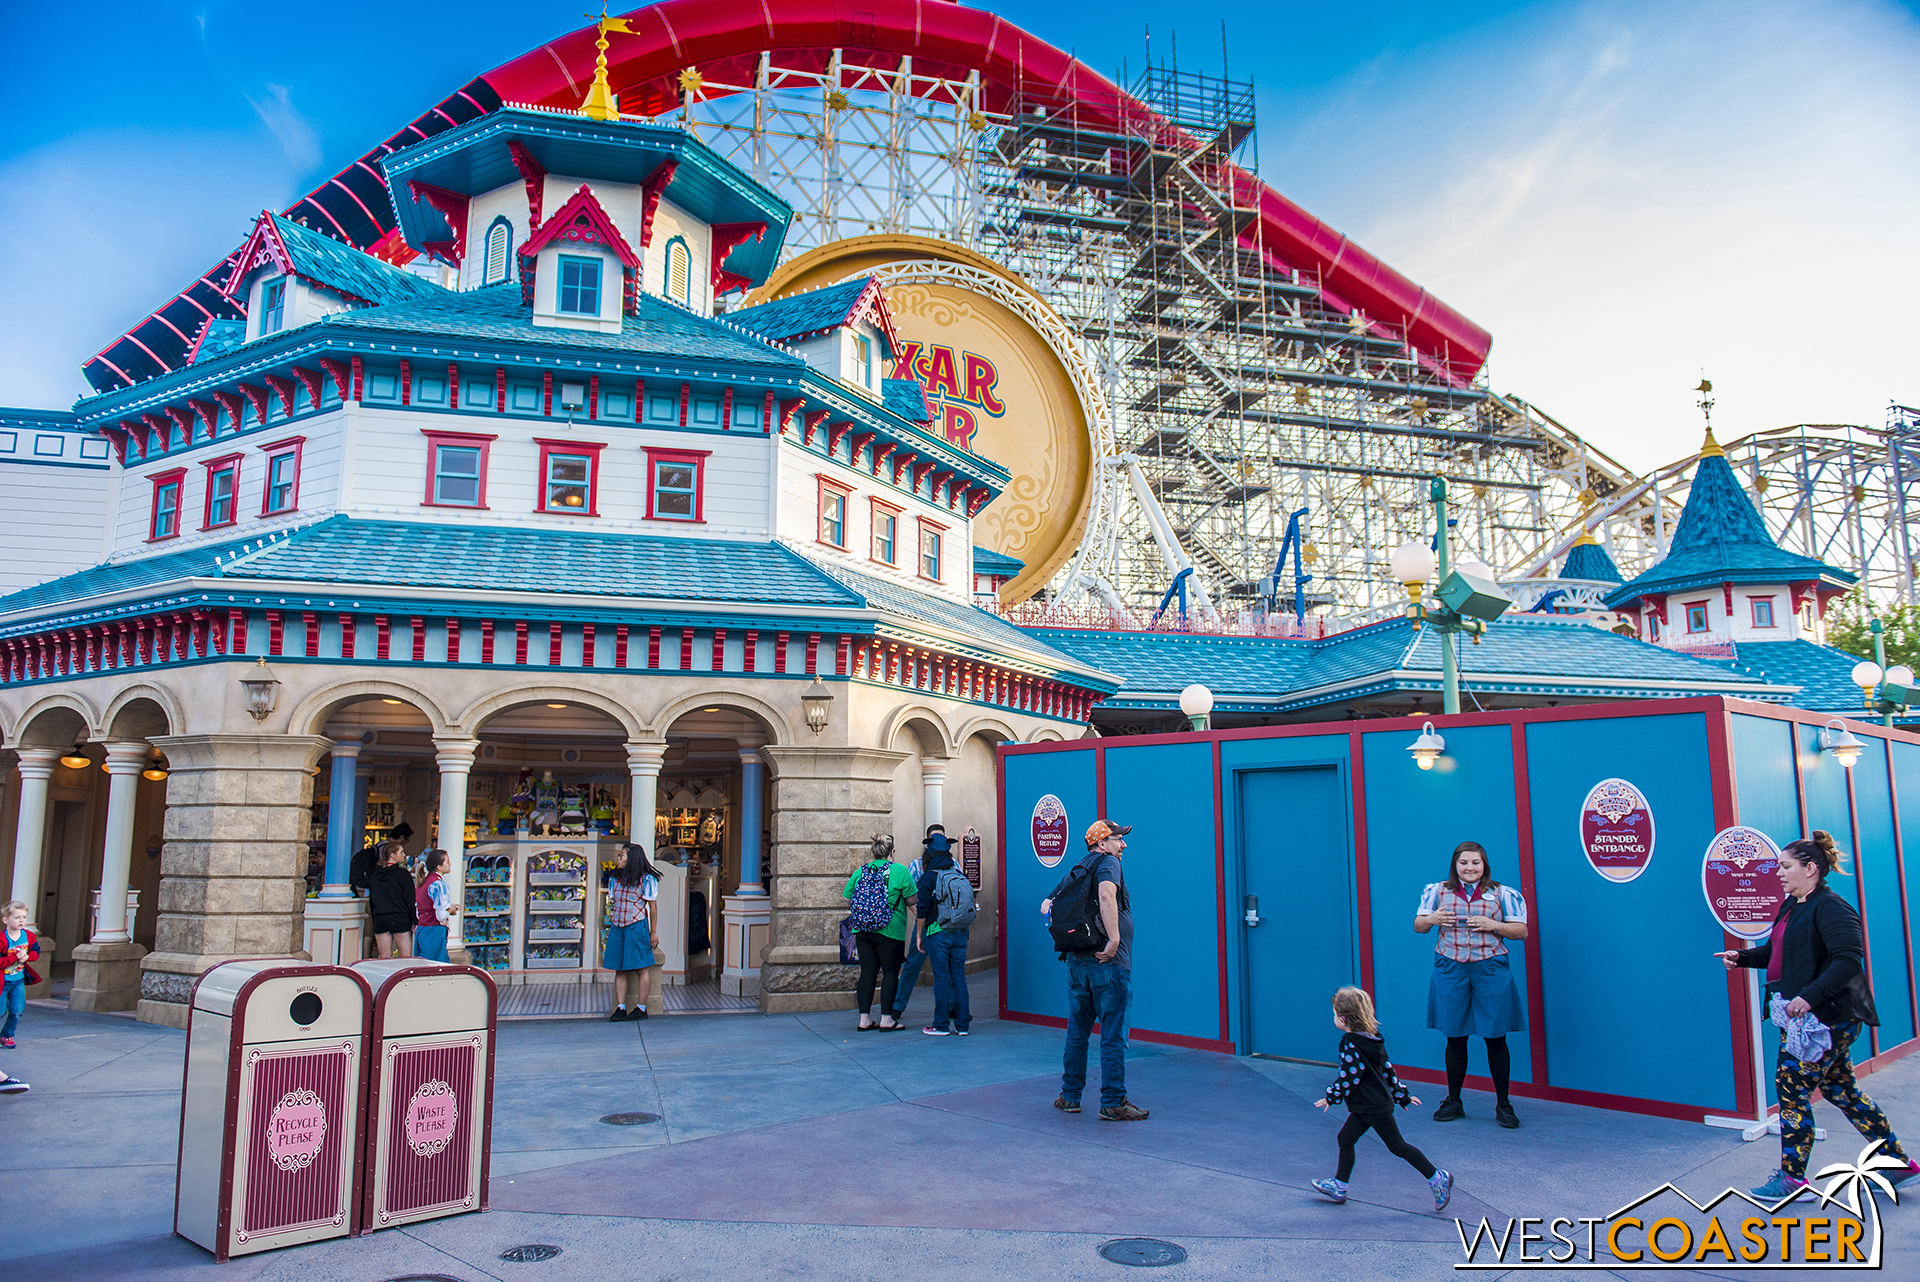 Lets take some close-up looks at the Midway Mania facades that have been uncovered now.